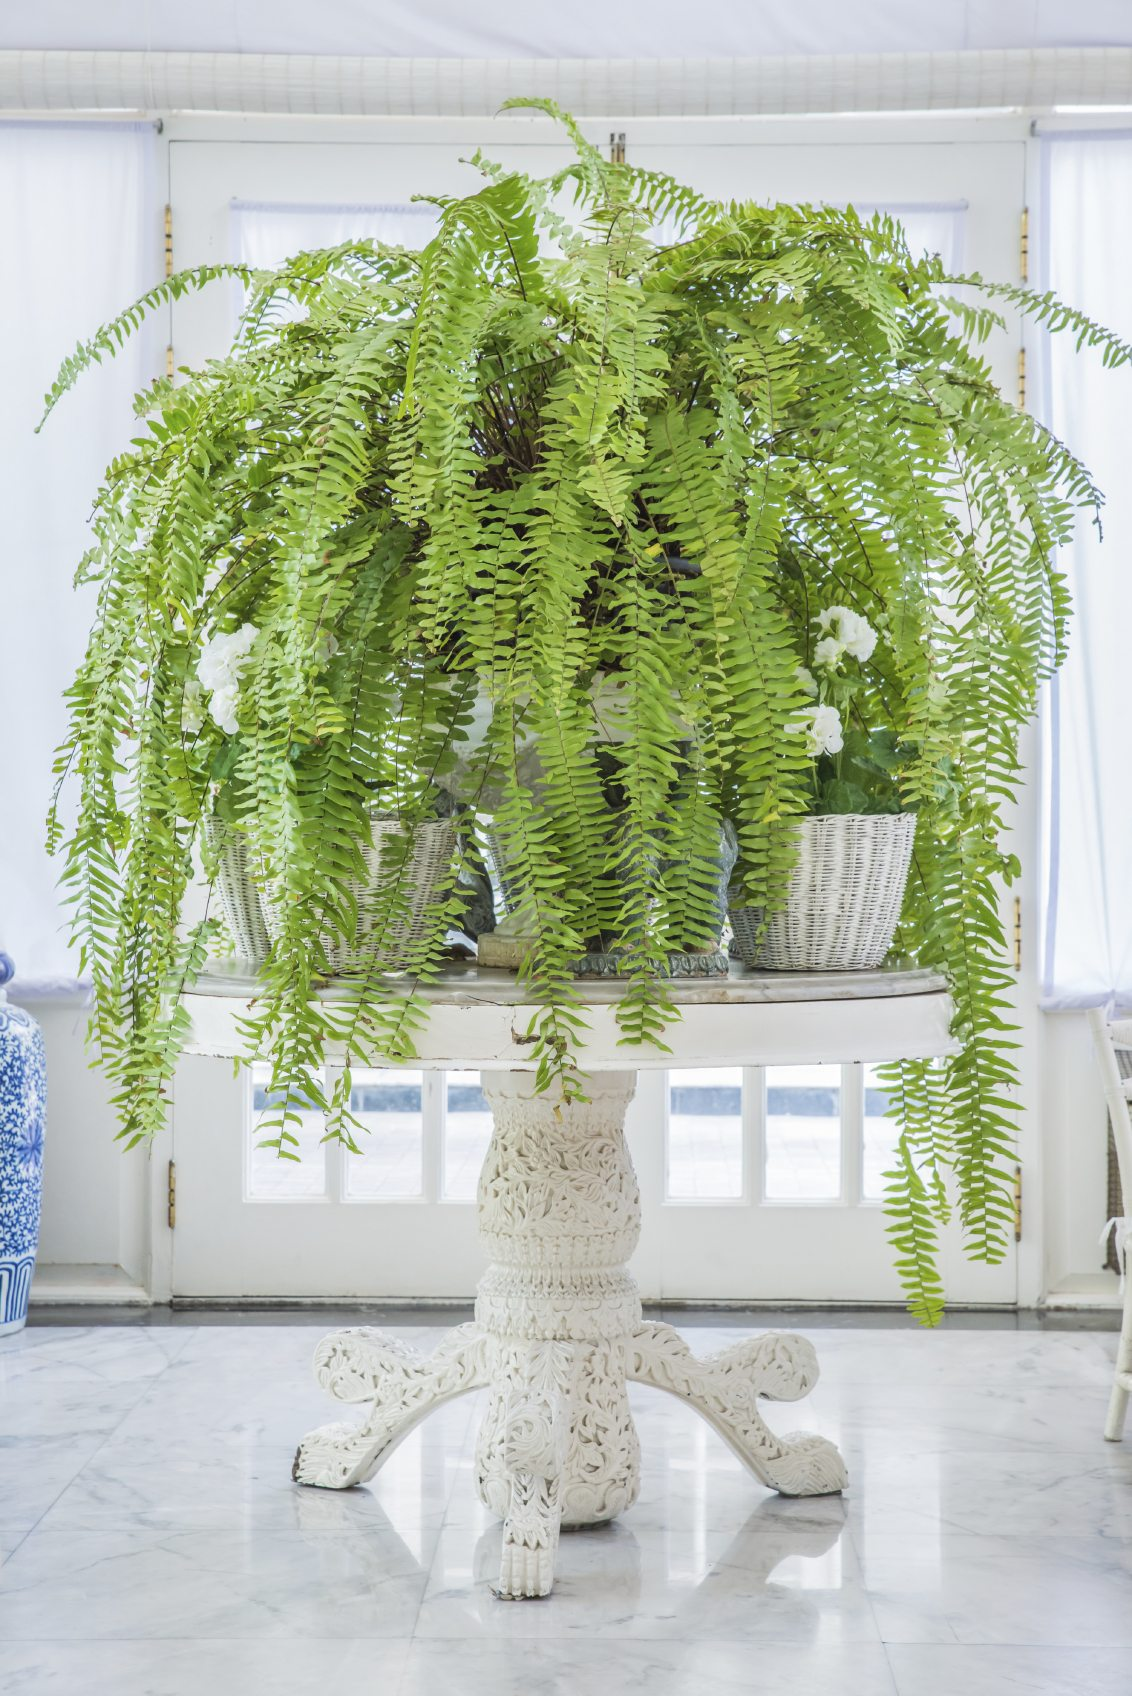 Boston Fern Light Needs Learn About Light Requirements For Boston Ferns